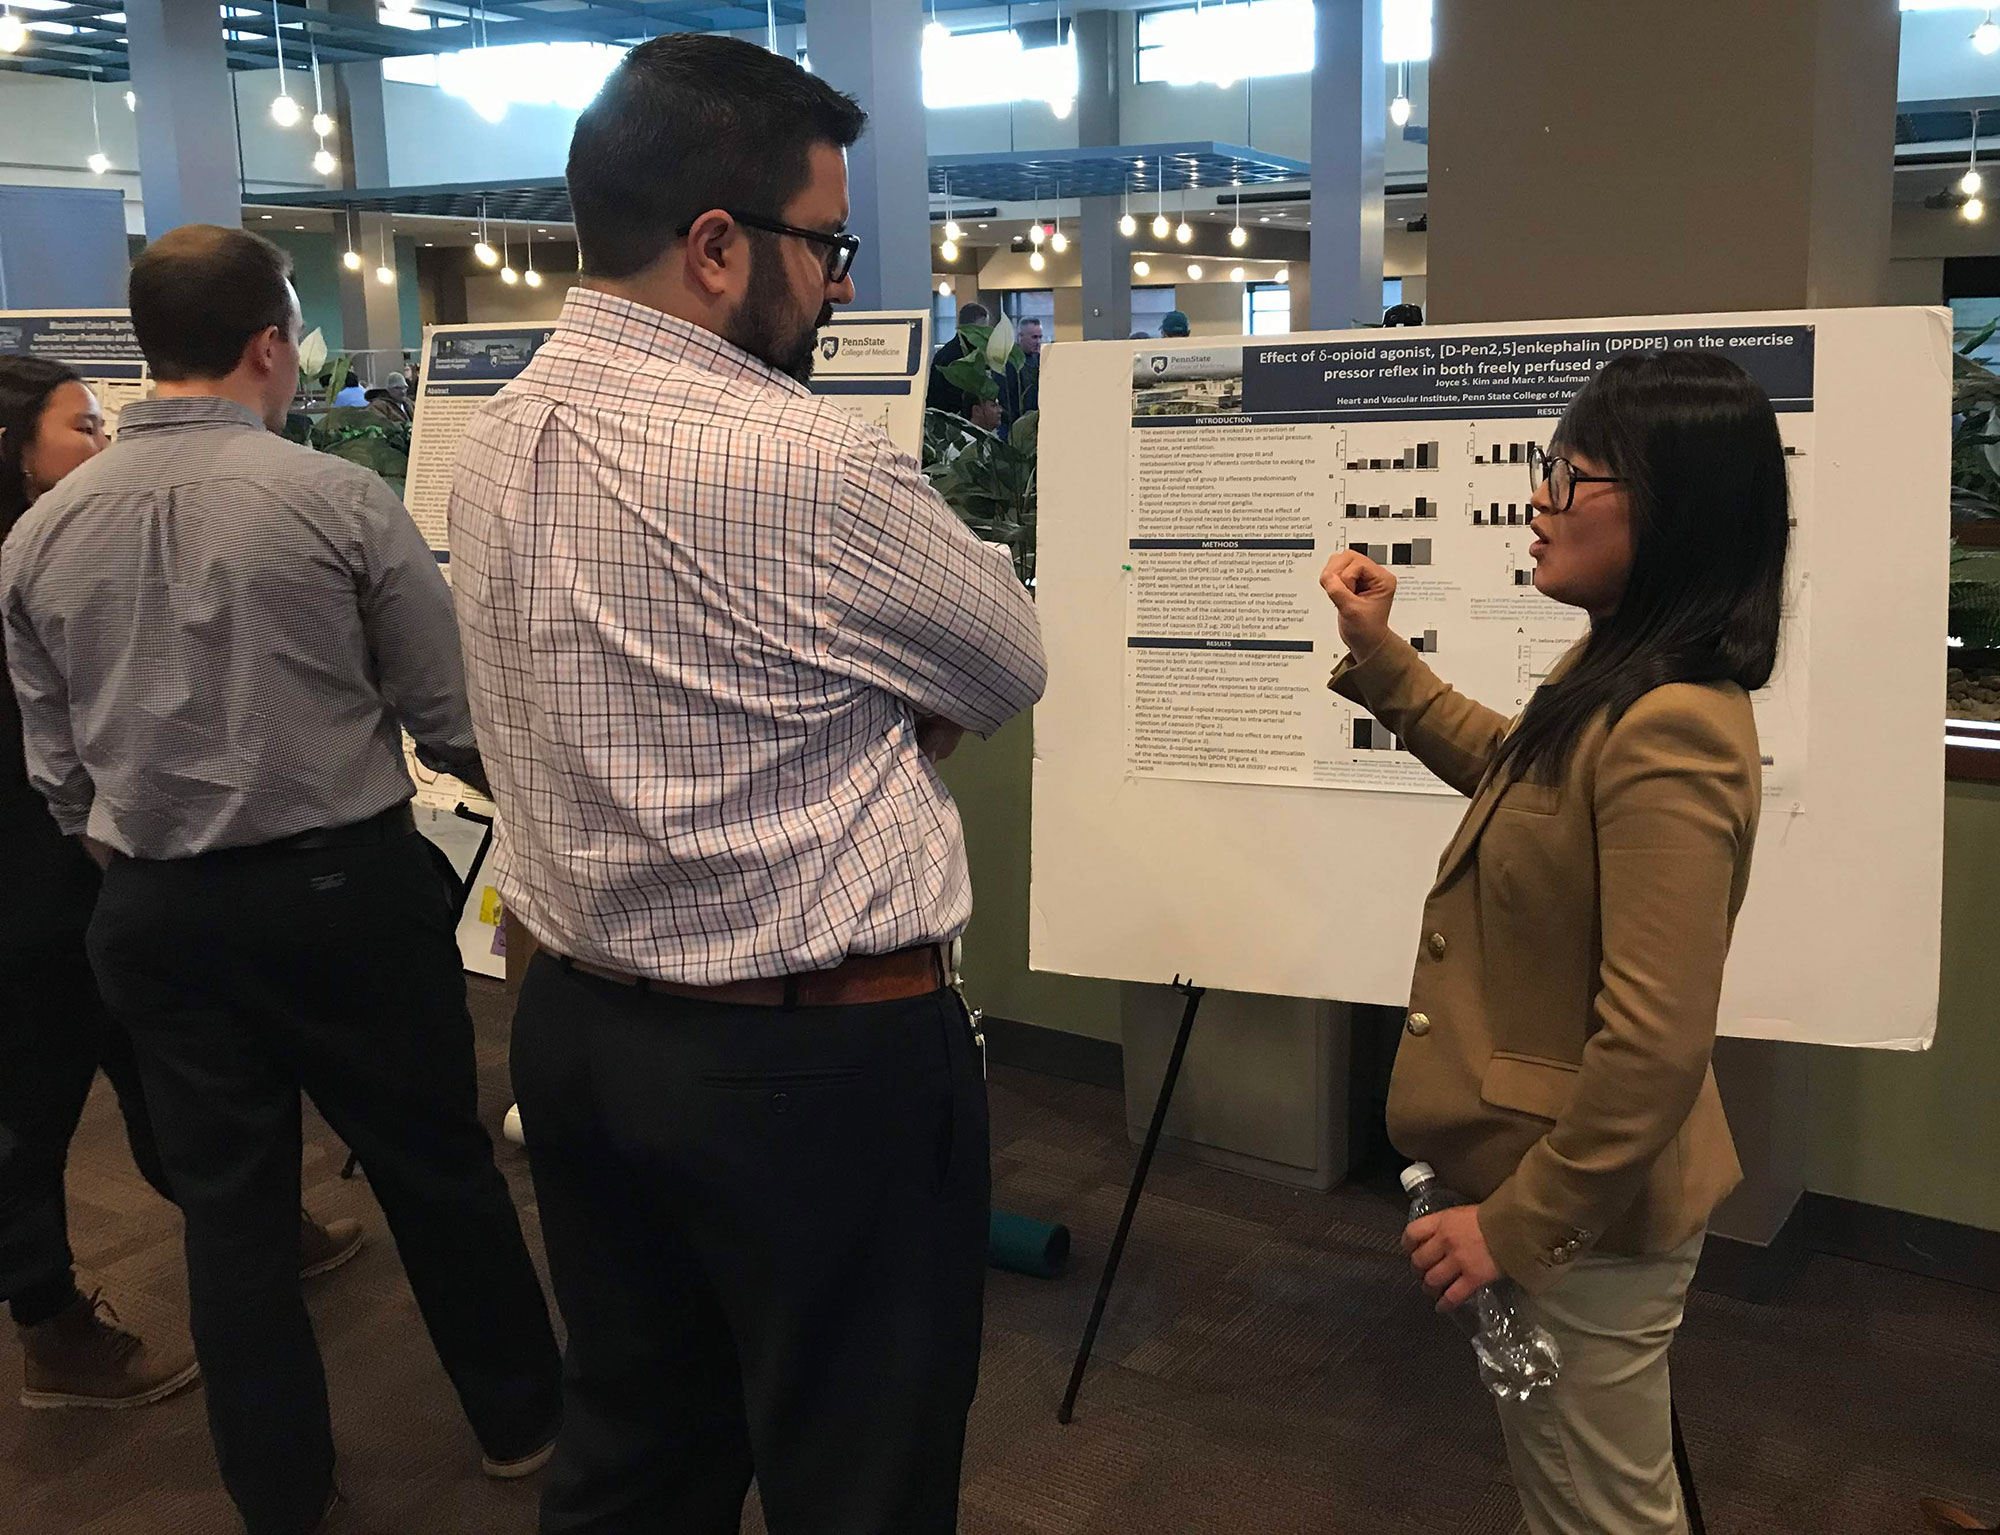 Two people stand in front of an academic poster, talking.